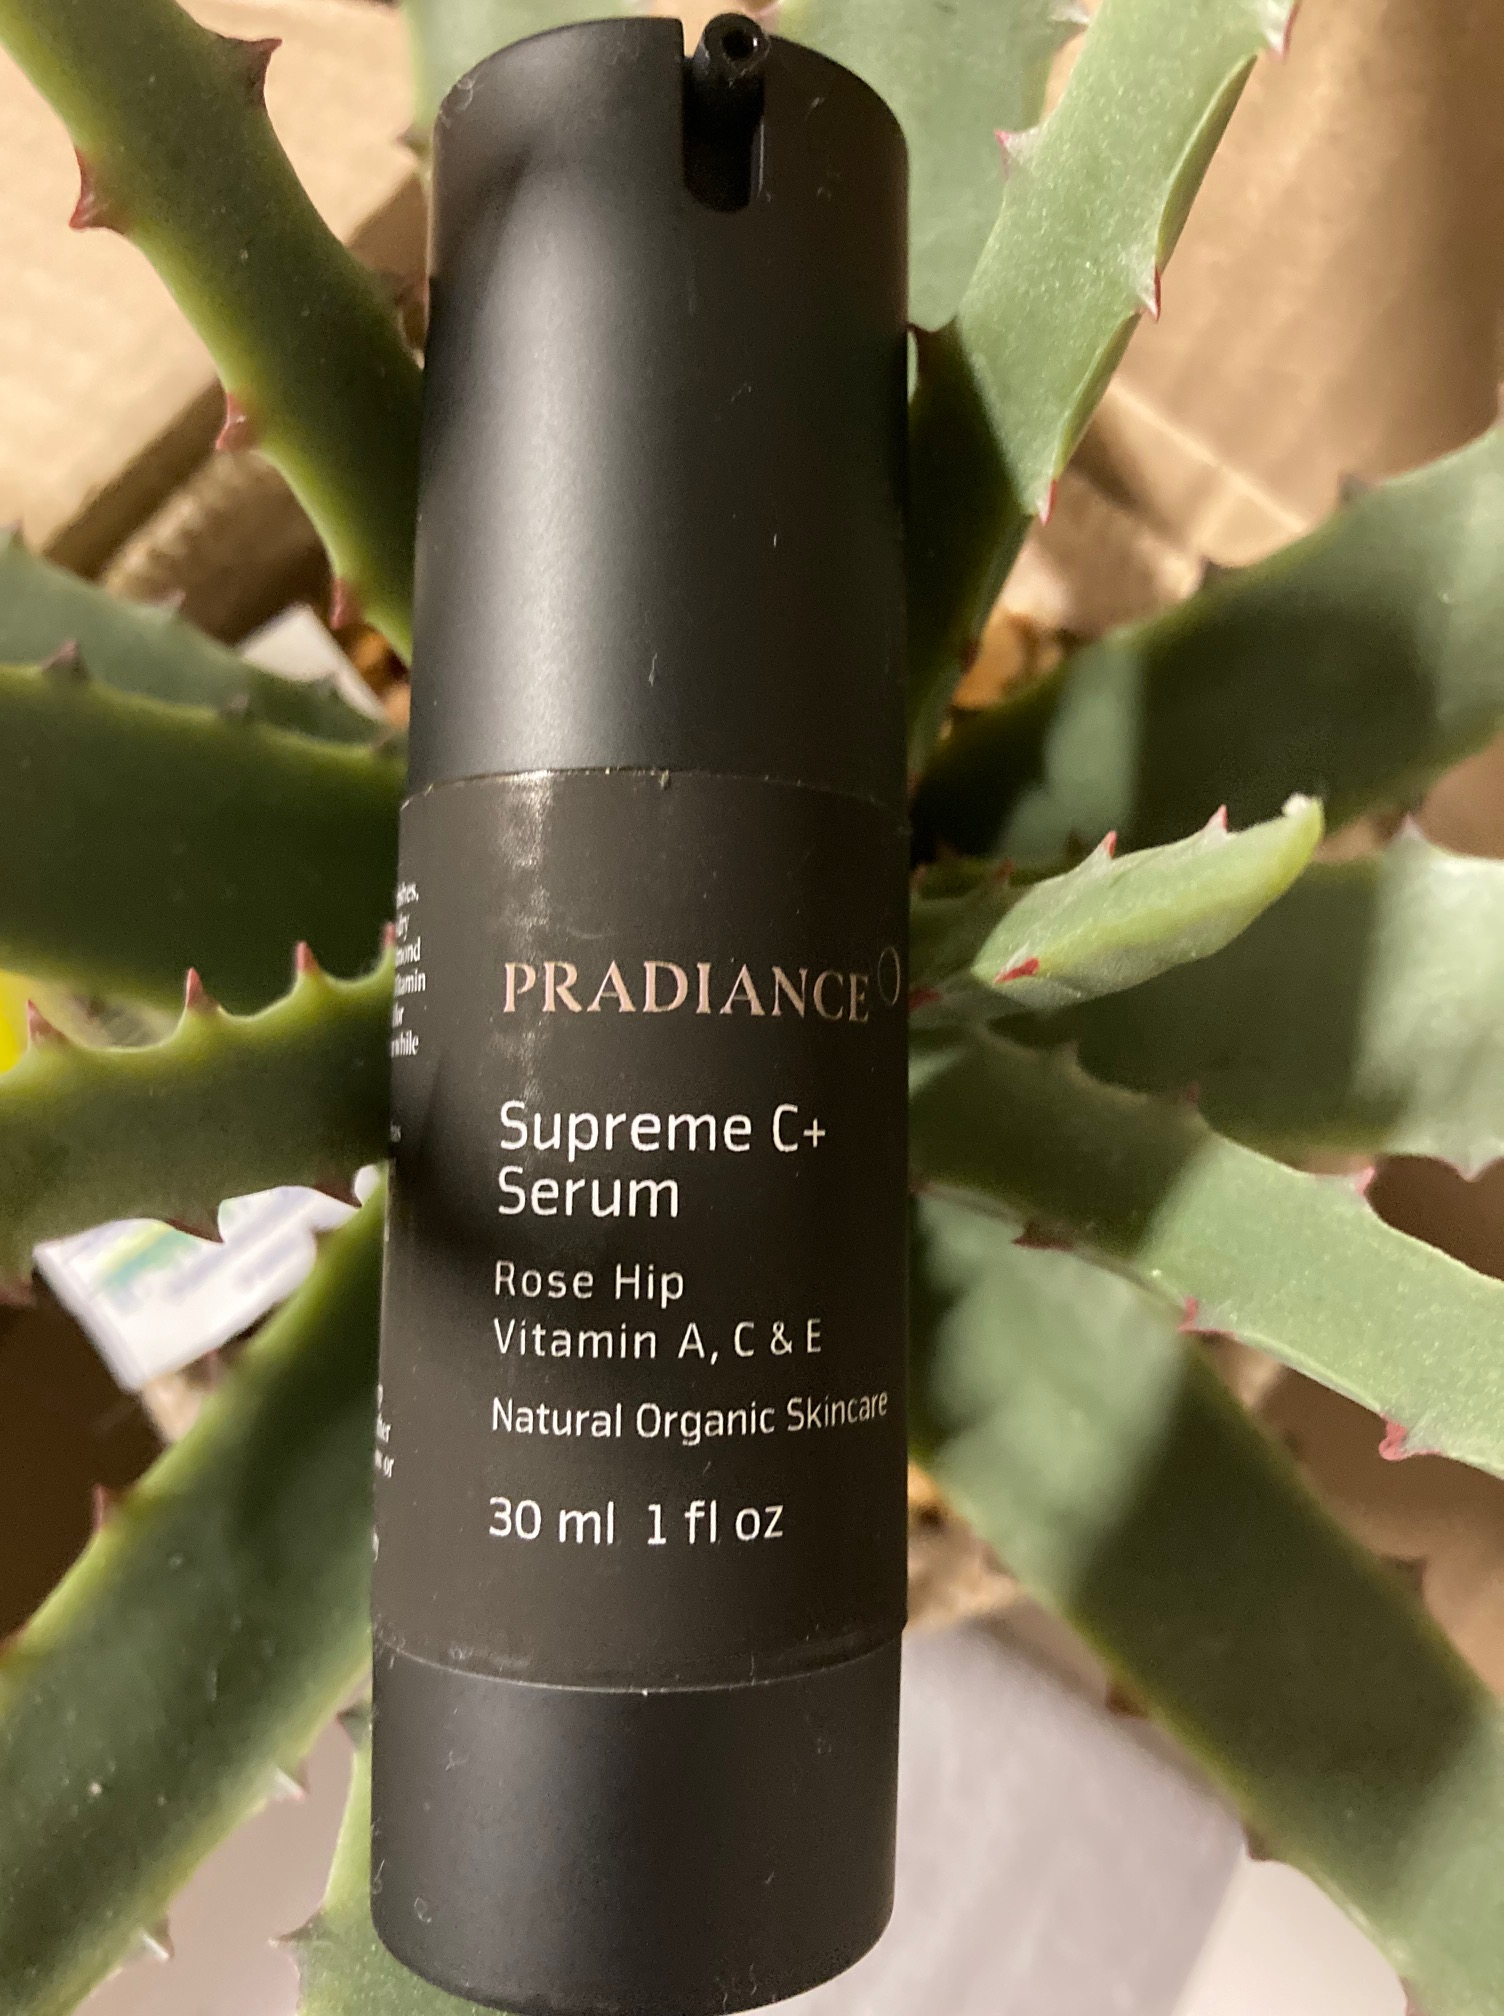 BEAUTY REVIEW: Pradiance Supreme C+ Serum